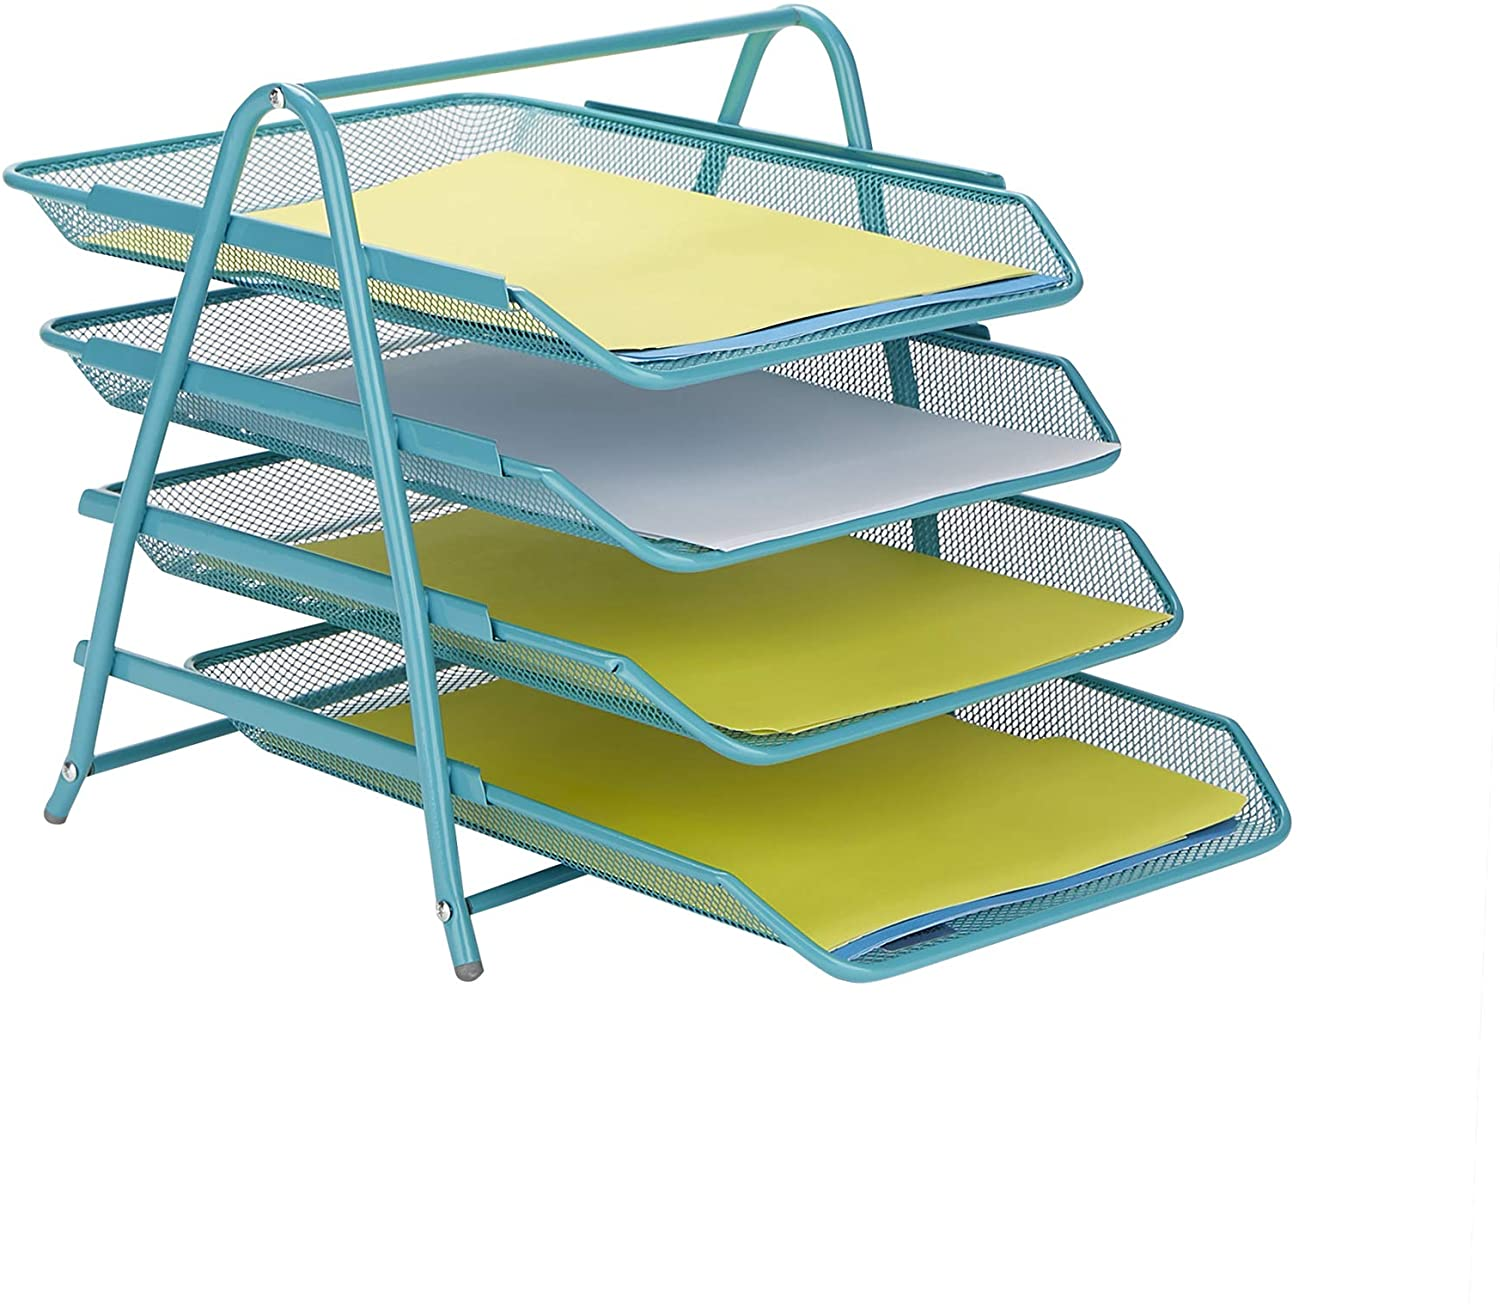 Mind Reader 4TPAPER-TUR Desk Organizer with 4 Sliding Trays for Letters, Documents, Mail, Files, Paper, Turquoise, 4 Tier